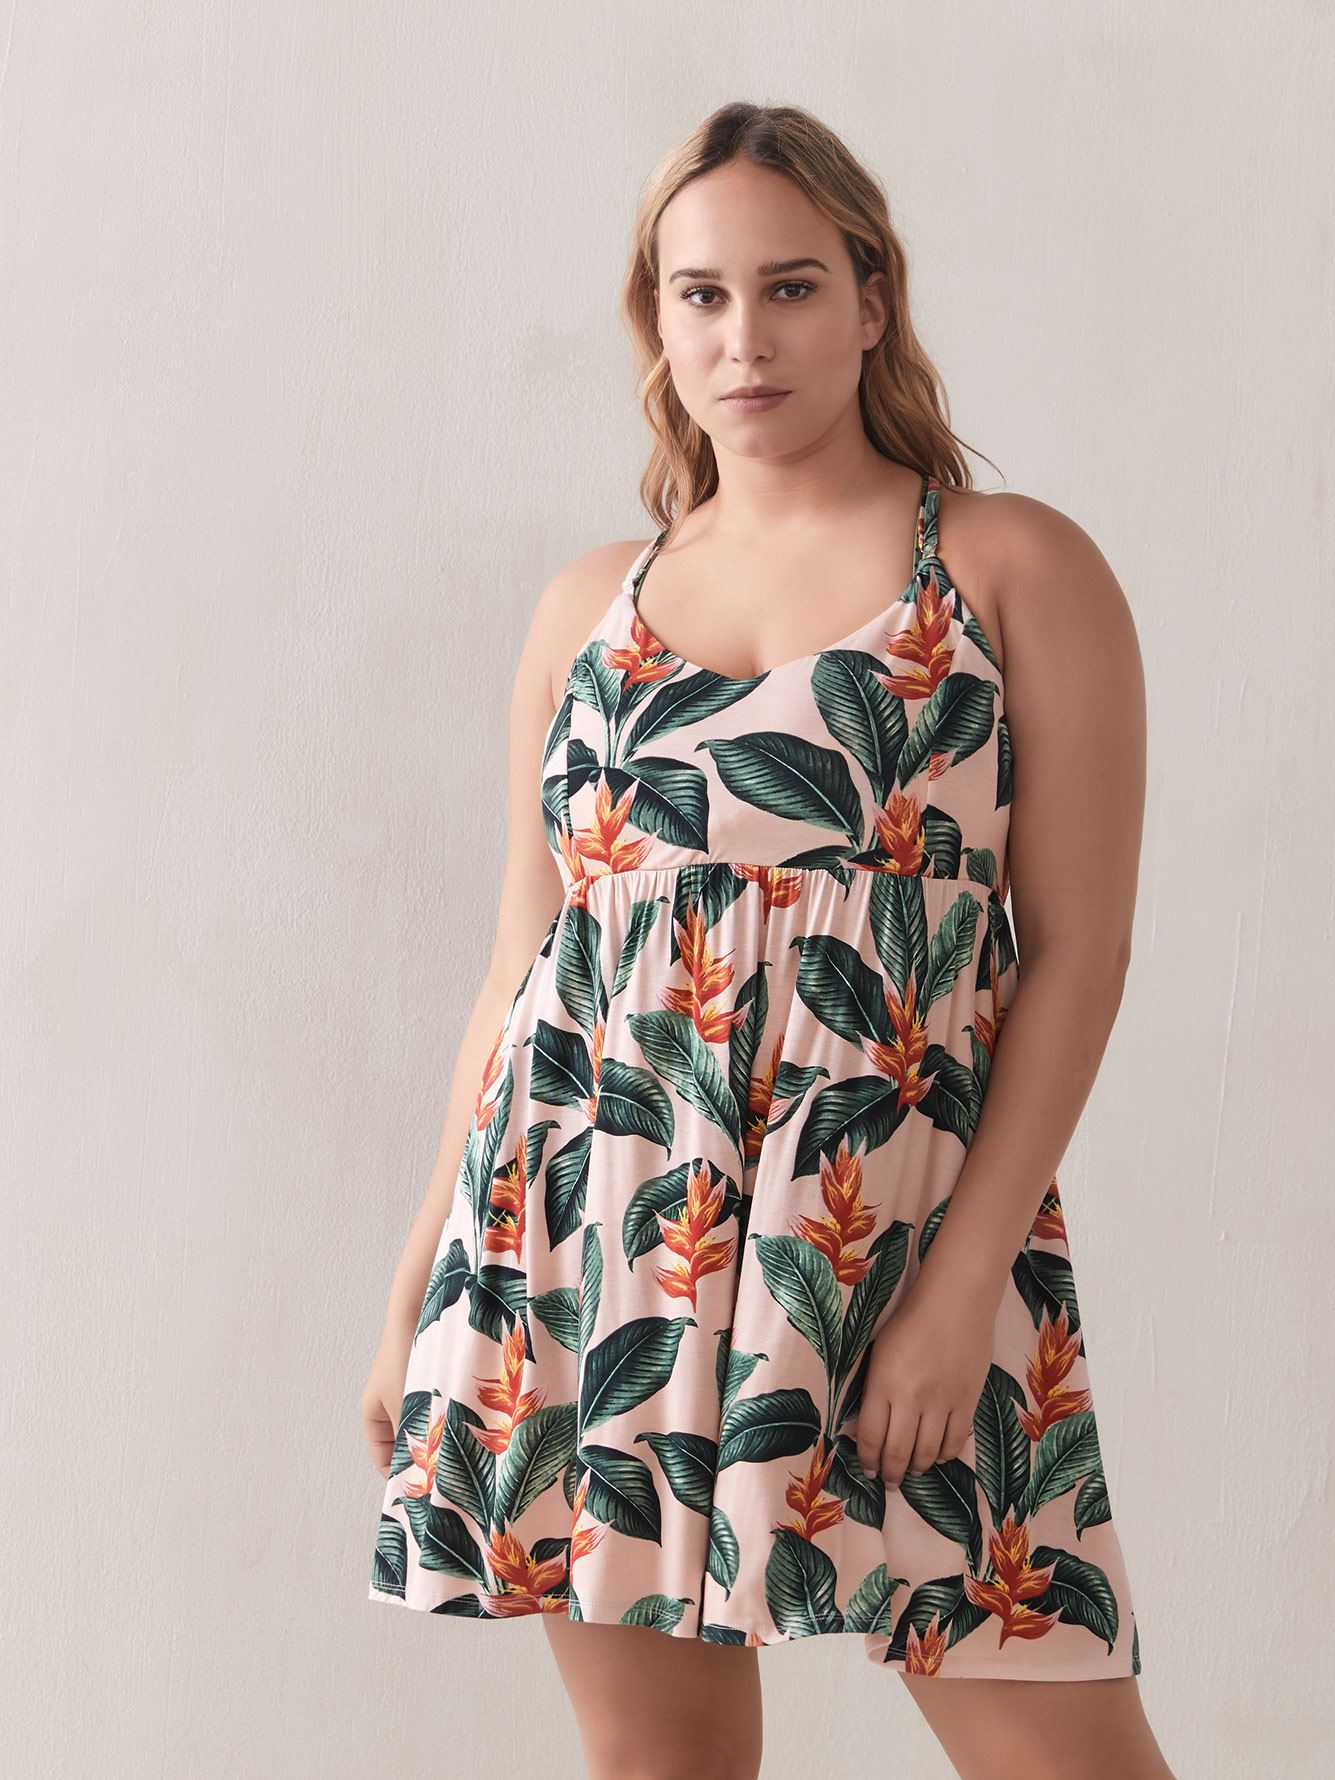 Sweet Escape Ivy Cover Up Dress - Body Glove